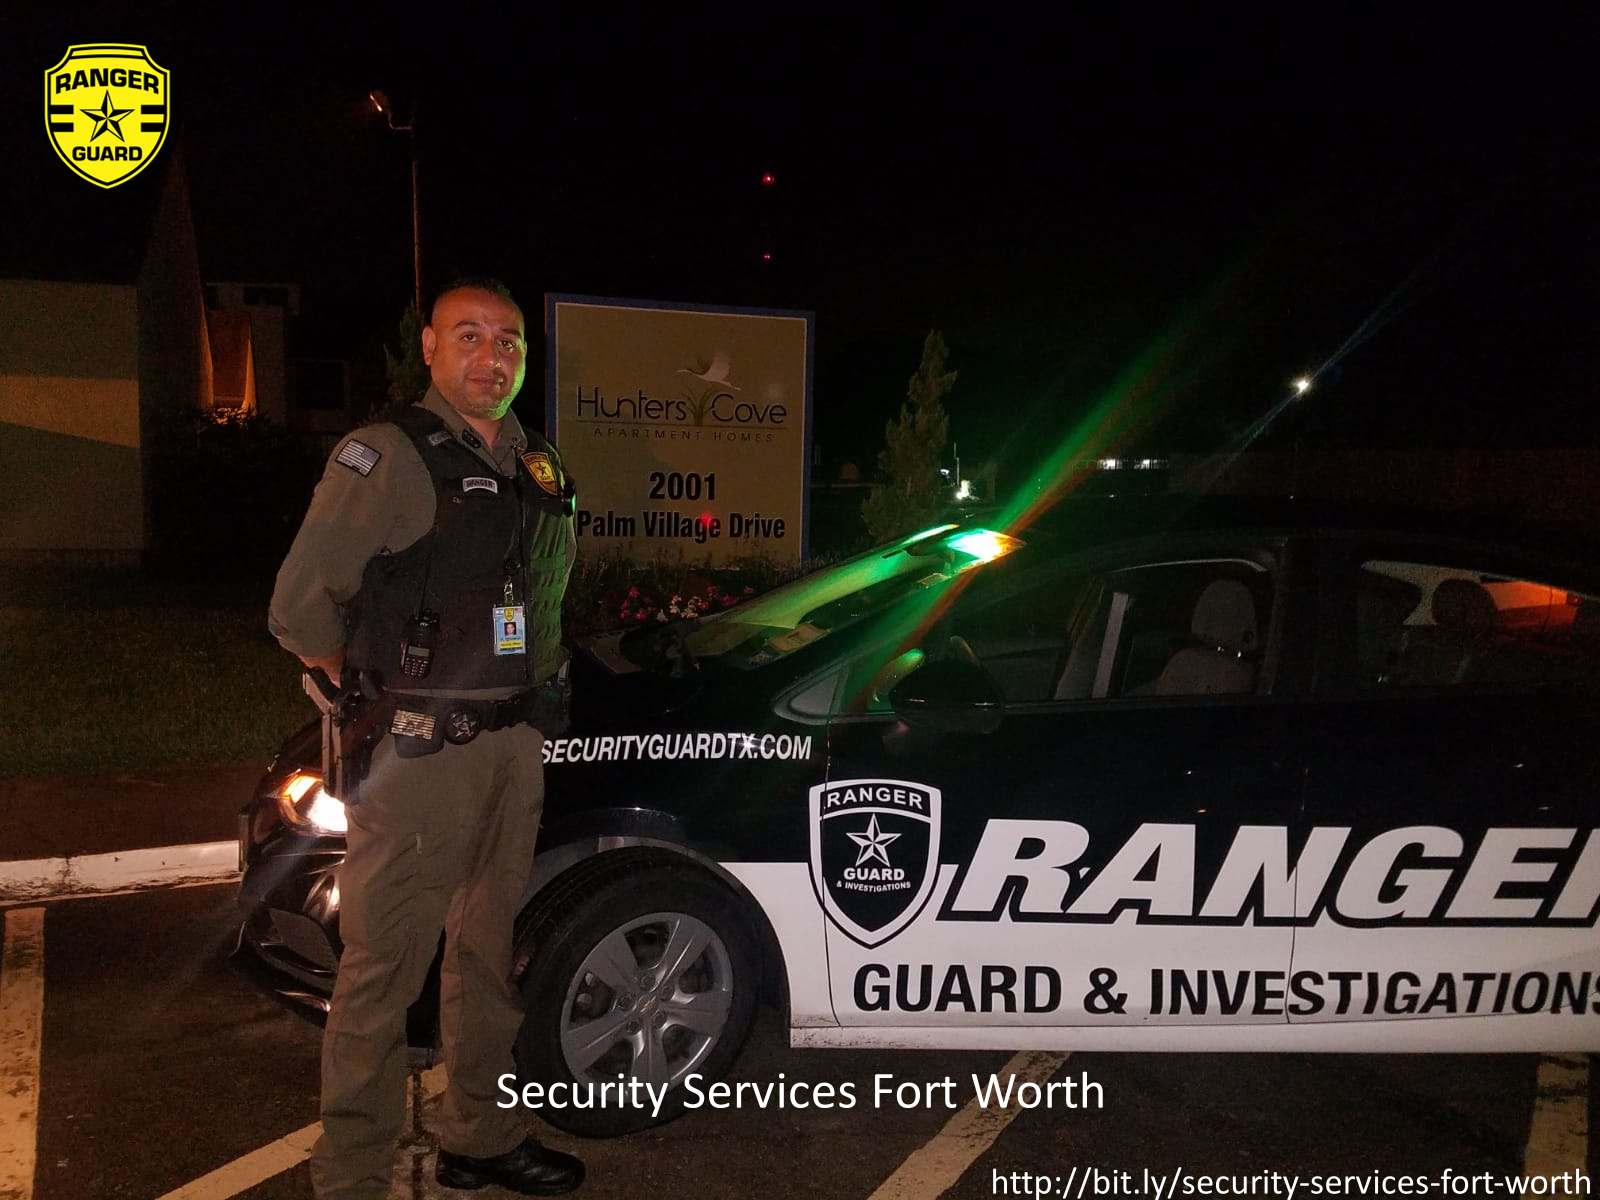 Ranger Guard and Investigations Highlights Top Instances to Hire a Corporate Security Guard